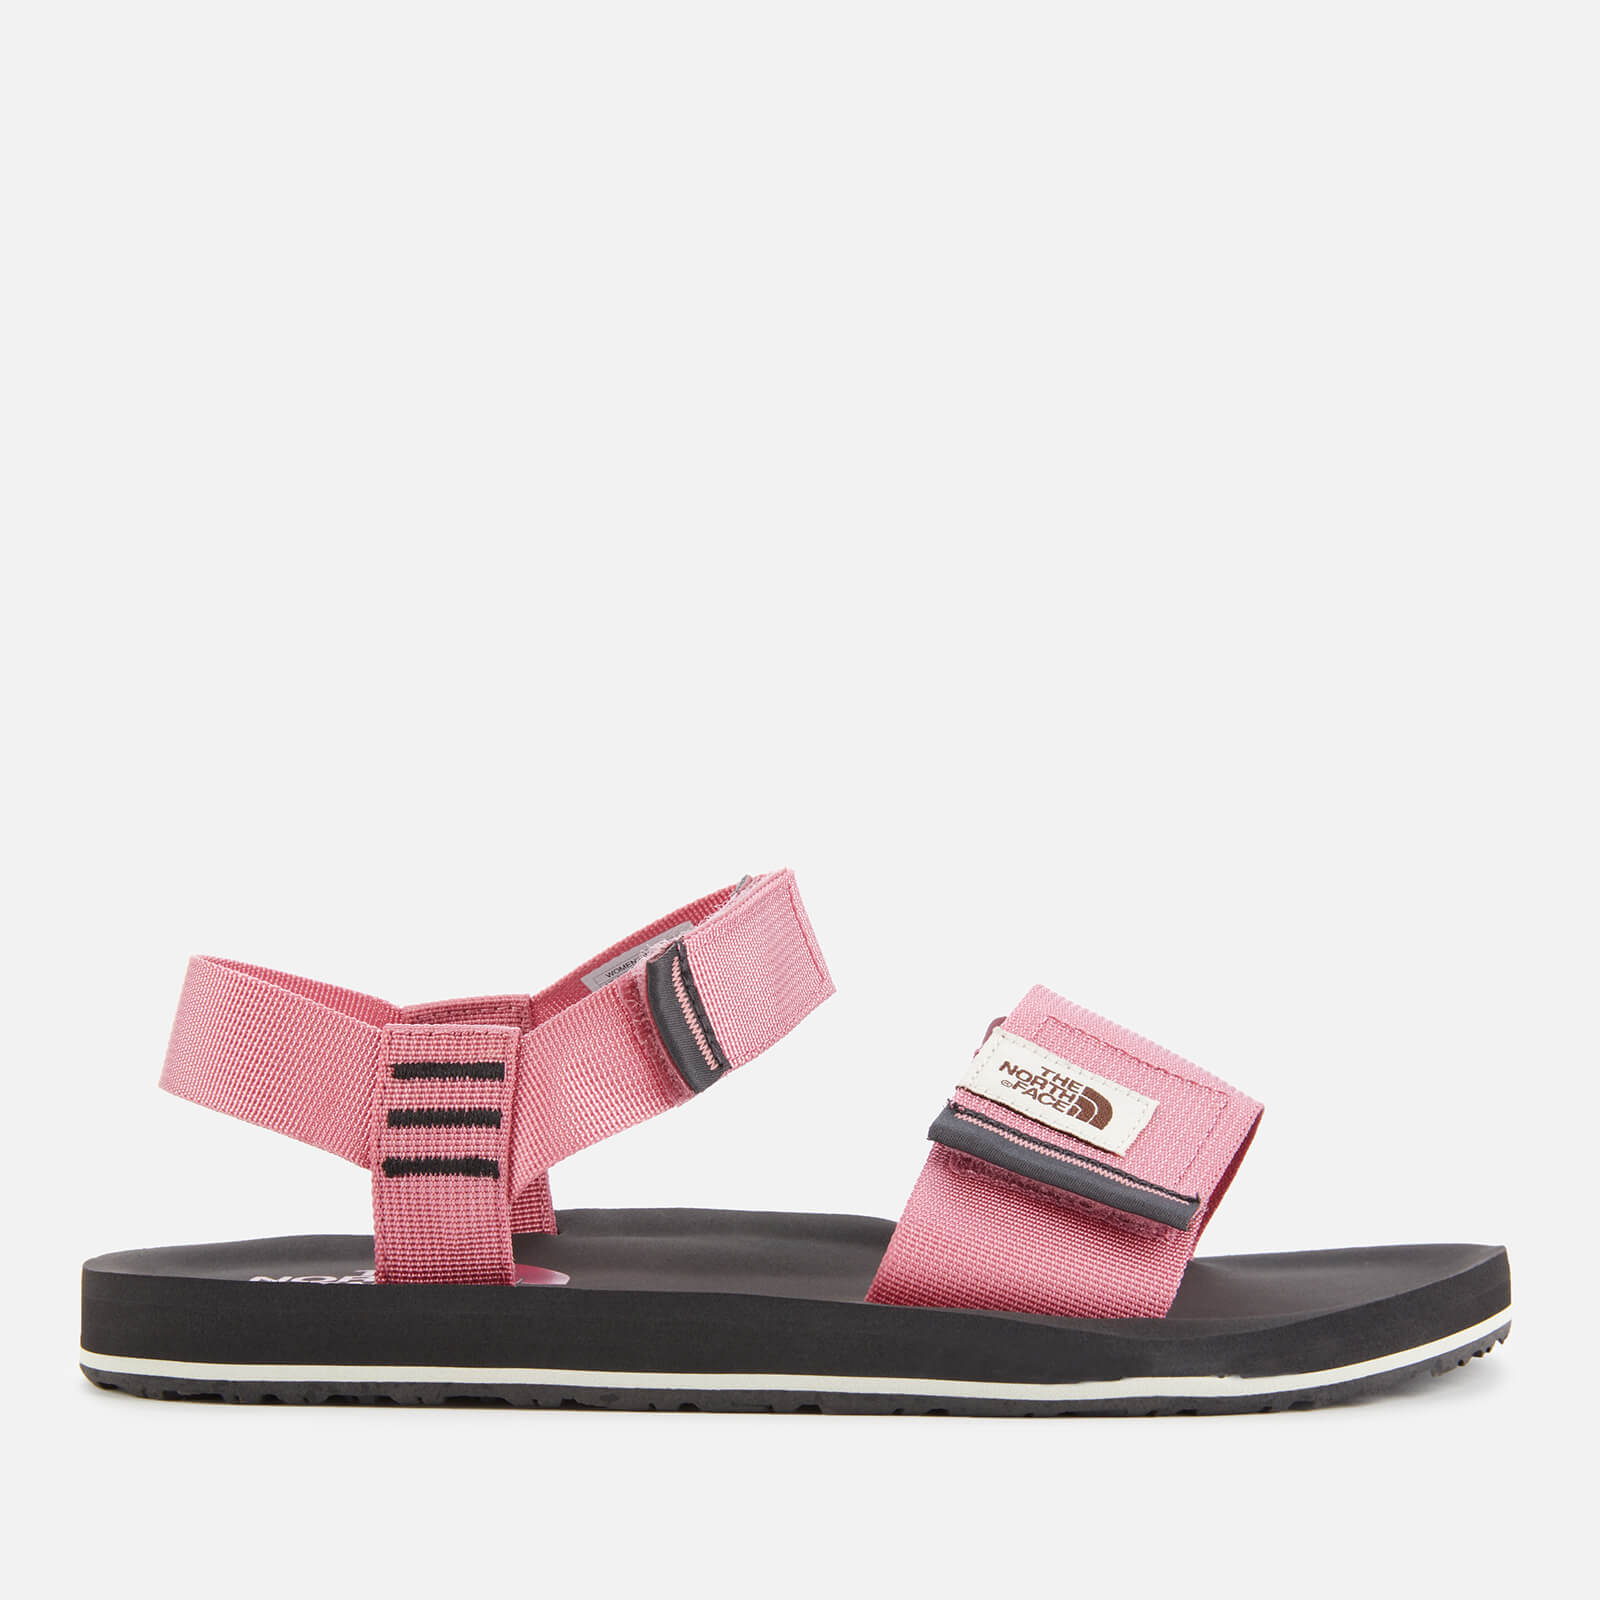 pink and black sandals